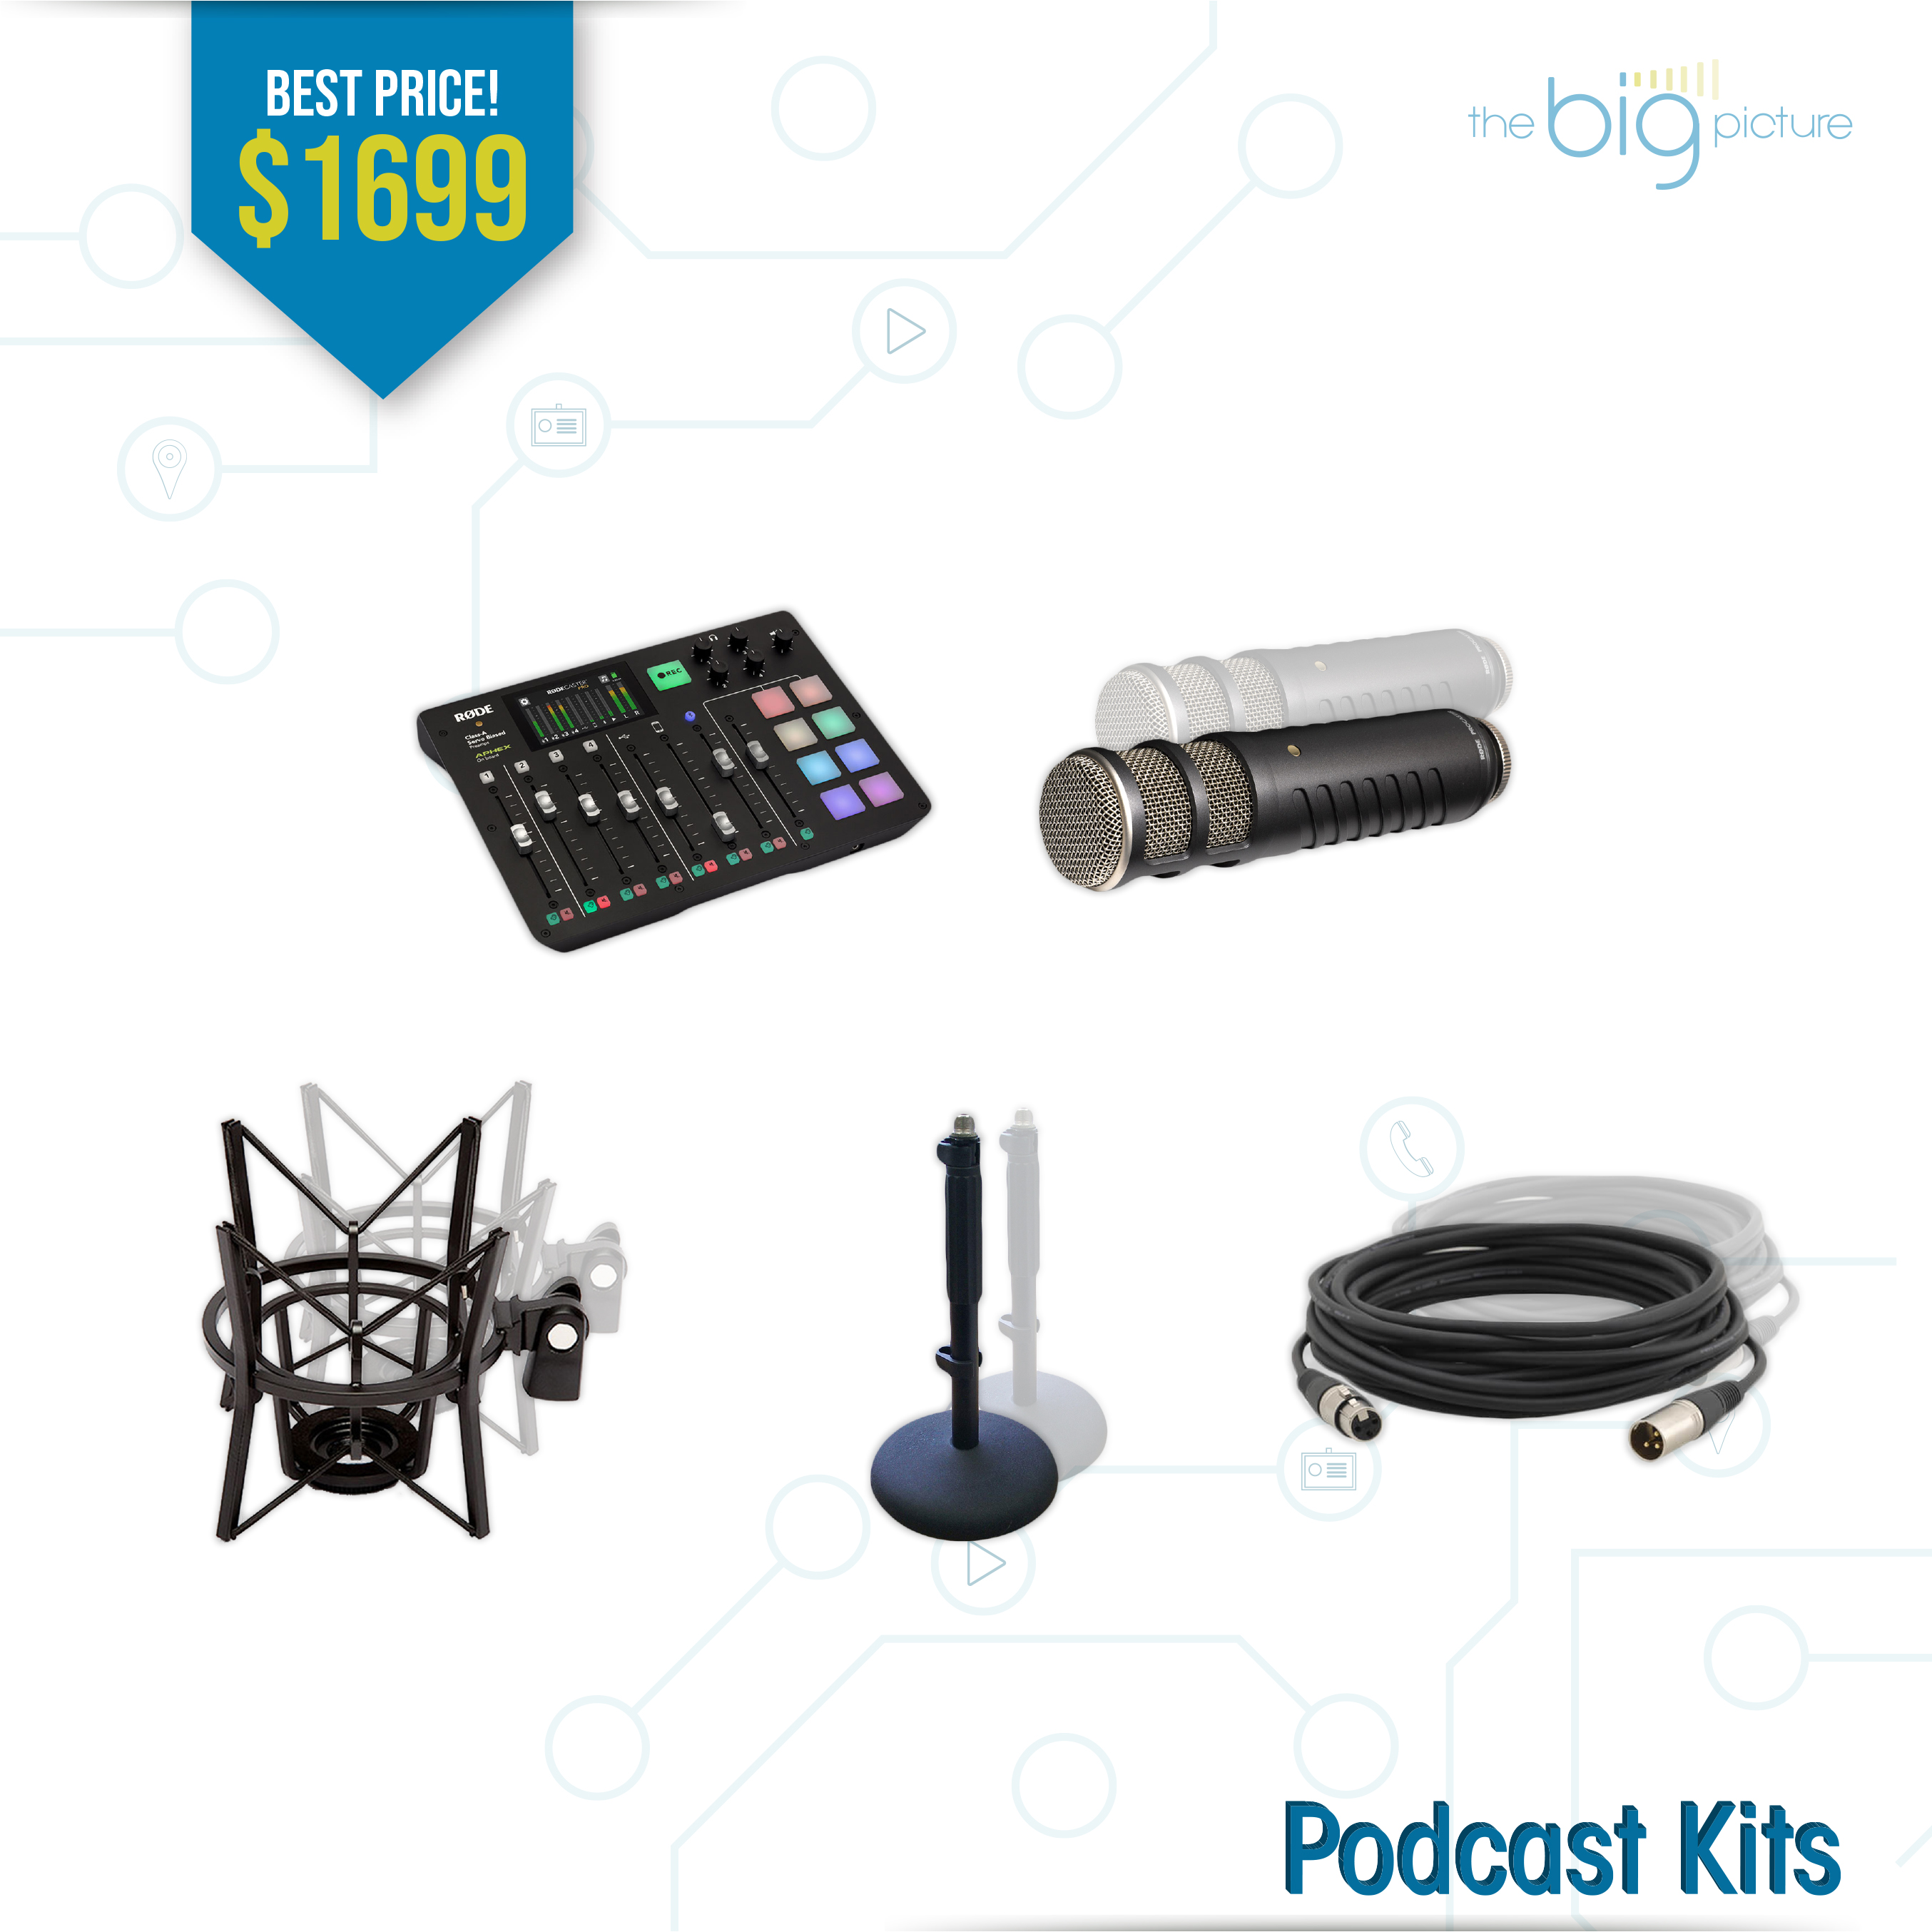 A set of products for Podcast Kits